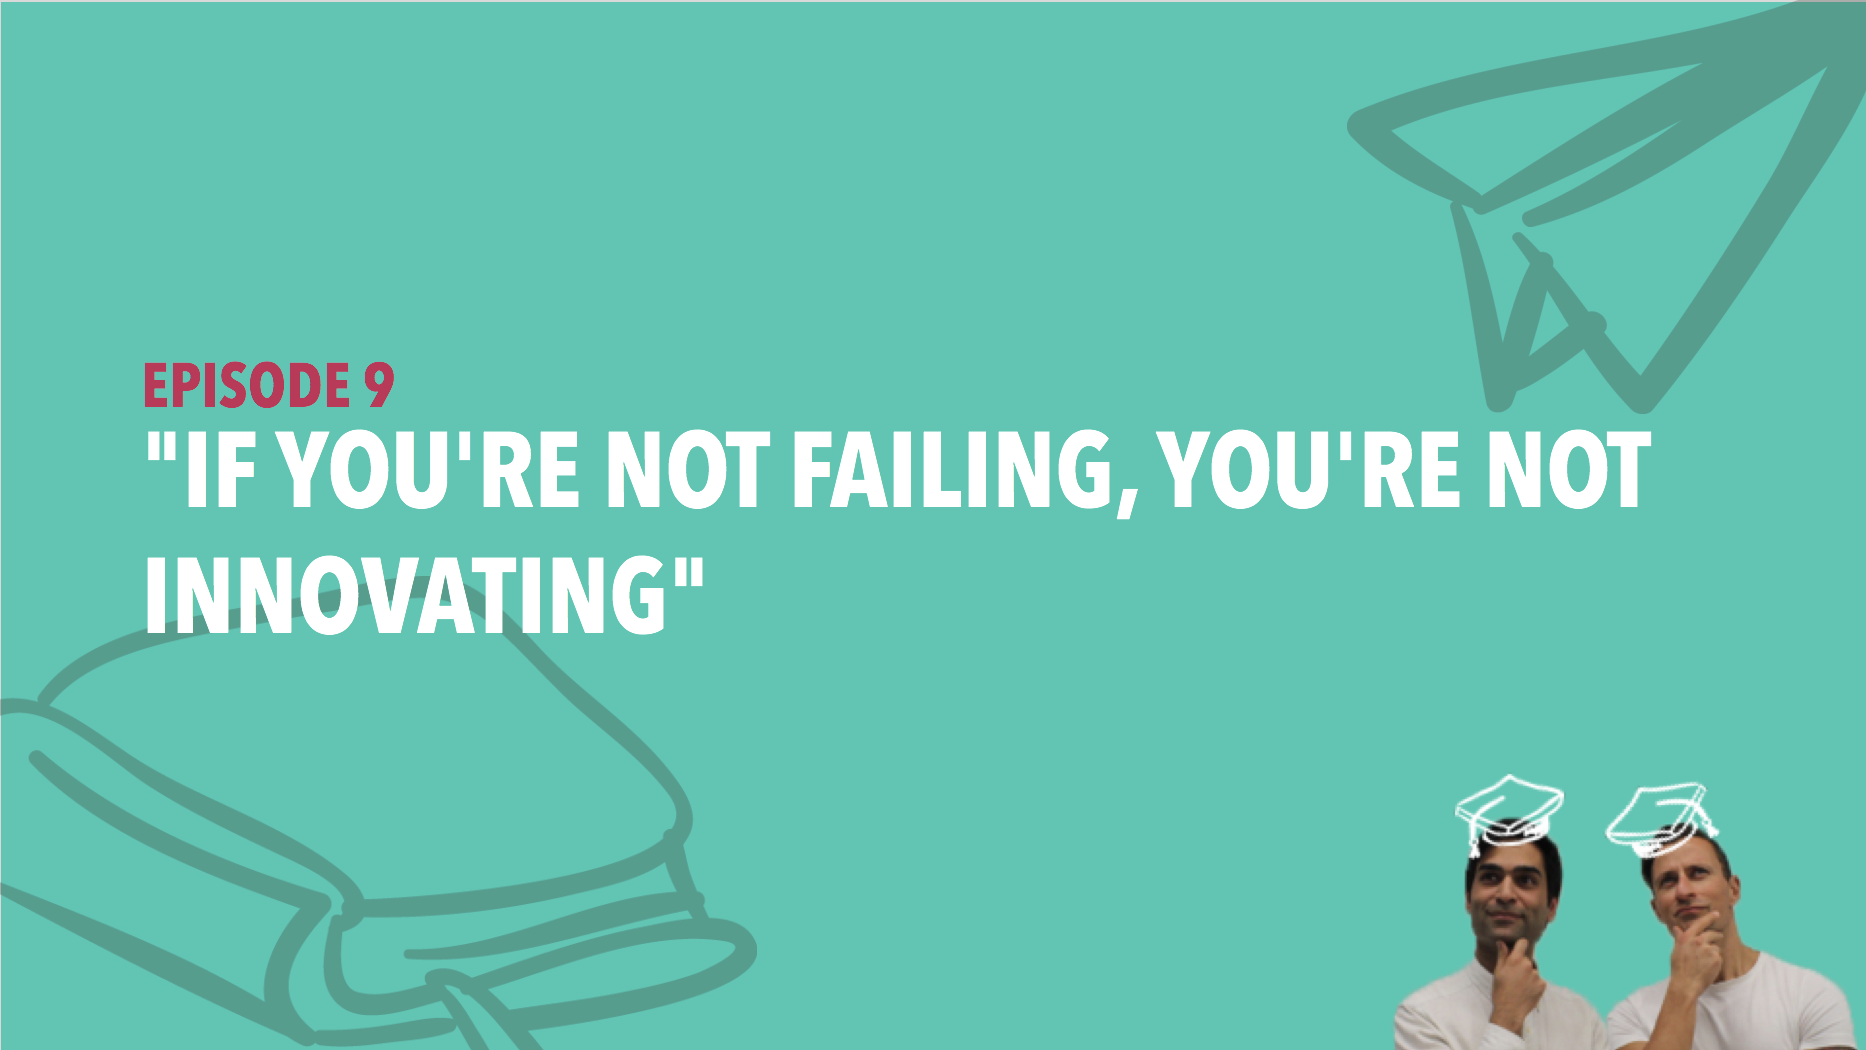 """CiSchool Episode #009: """"If you're not failing, you're not innovating"""""""